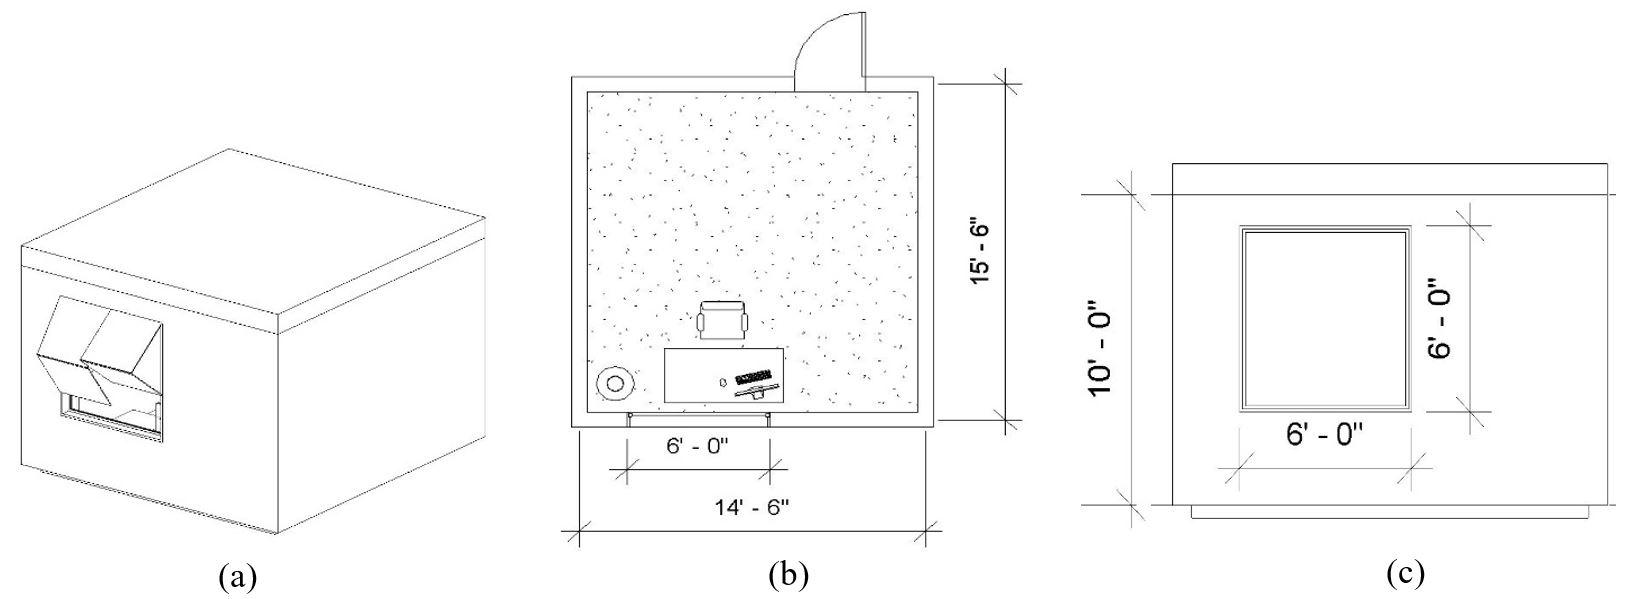 Figure 6: (a) Perspective view of the case study model; (b) Floor plan of the case study model; (c) South elevation of the case study model